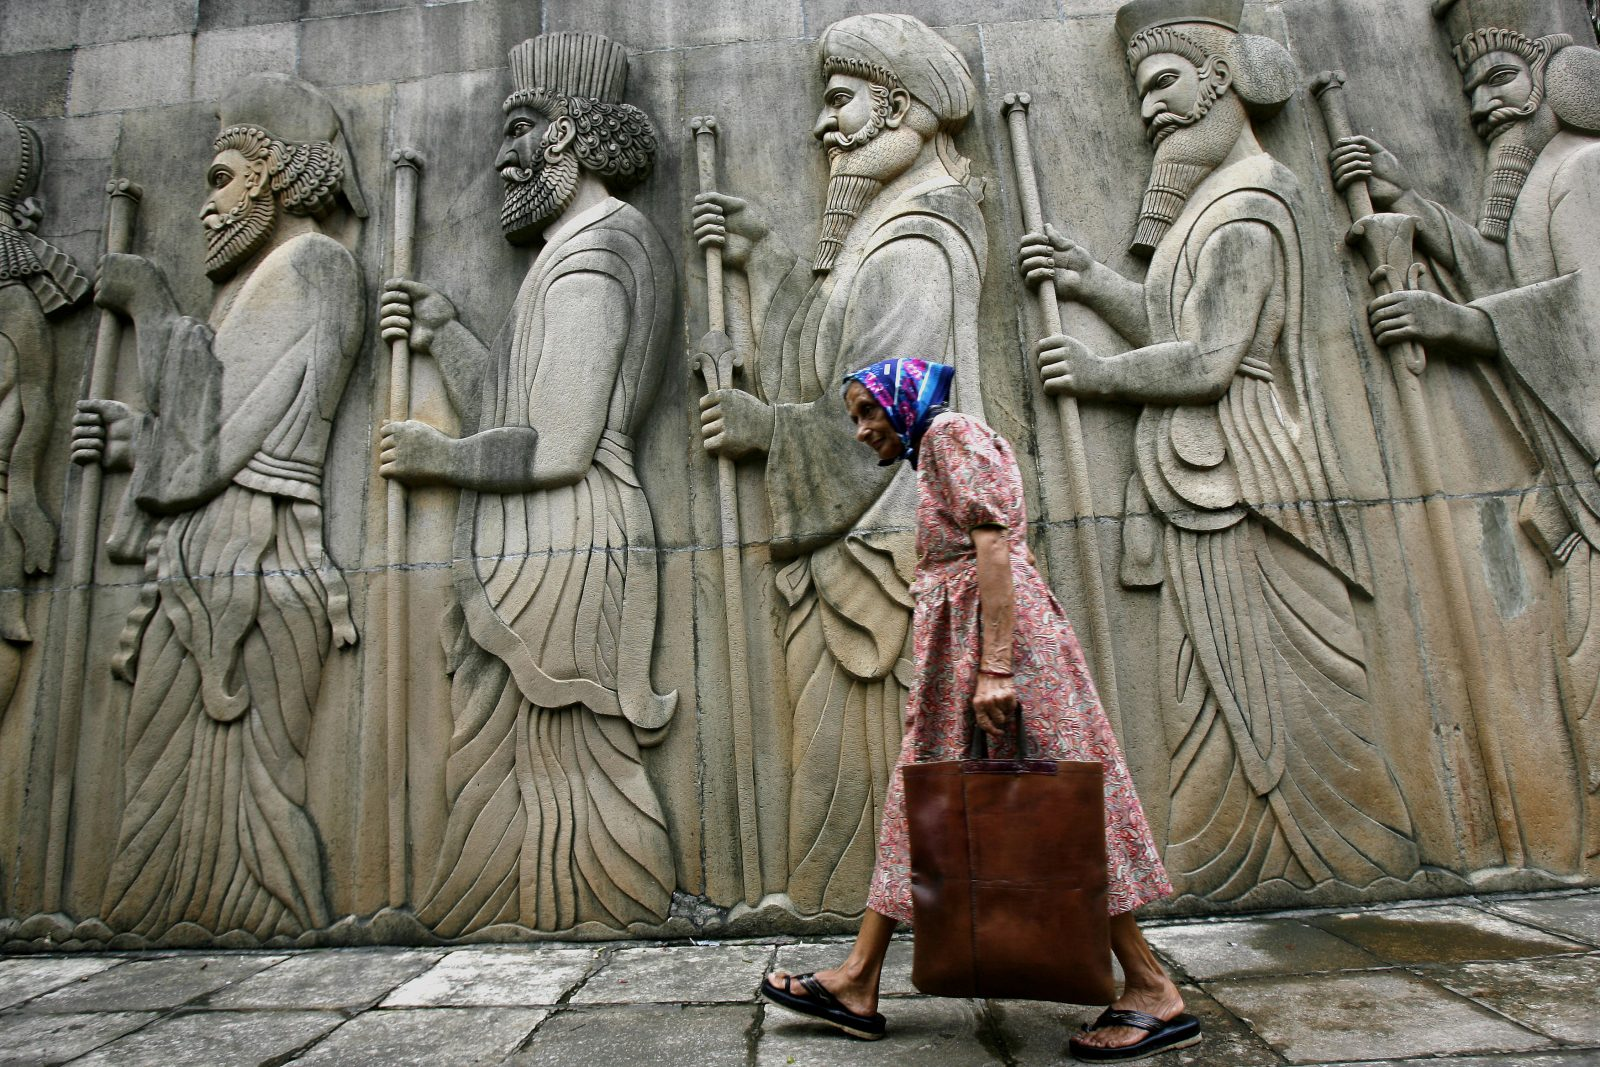 A devotee enters a Parsi fire temple on Parsi New Year day in Mumbai August 19, 2008. The Parsis, descendants of Persian Zoroastrians, emigrated to the Indian subcontinent more than 1000 years ago to escape religious persecution after the Islamic conquest.